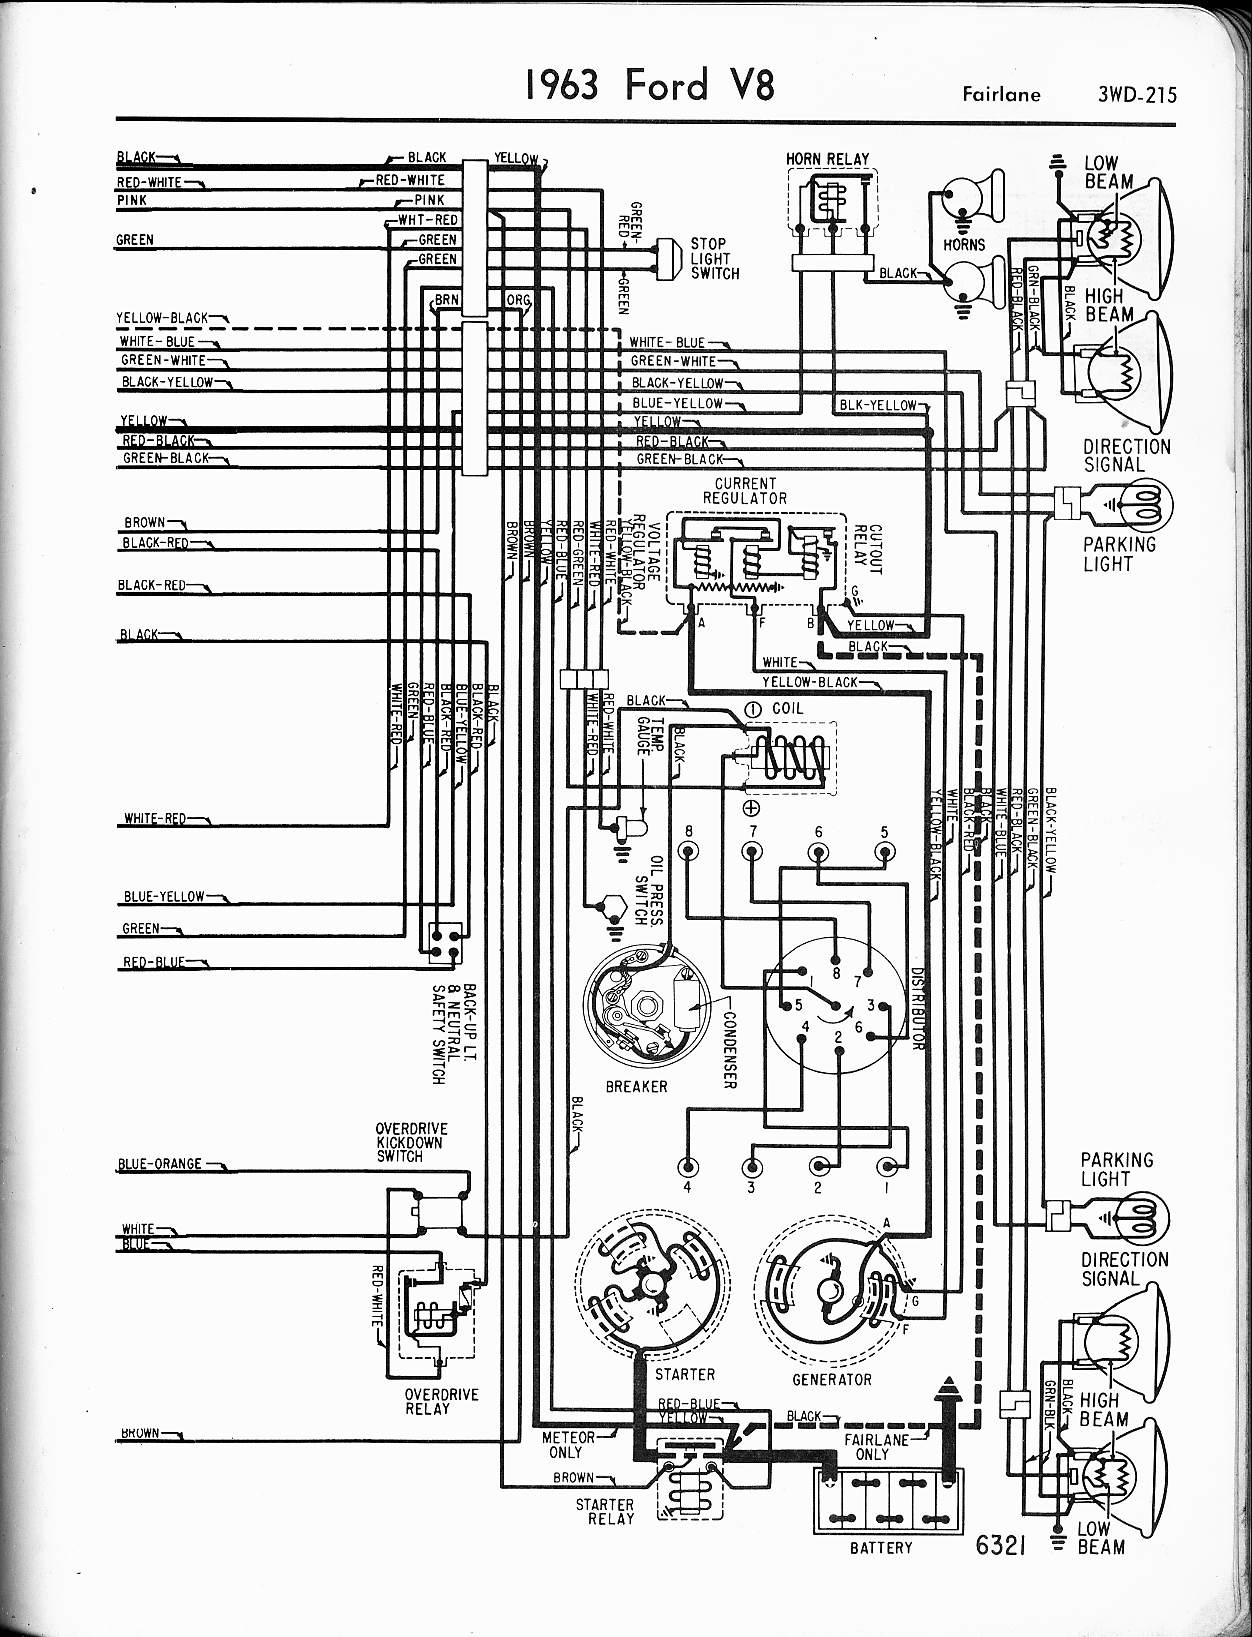 56 ford fairlane wiring diagram